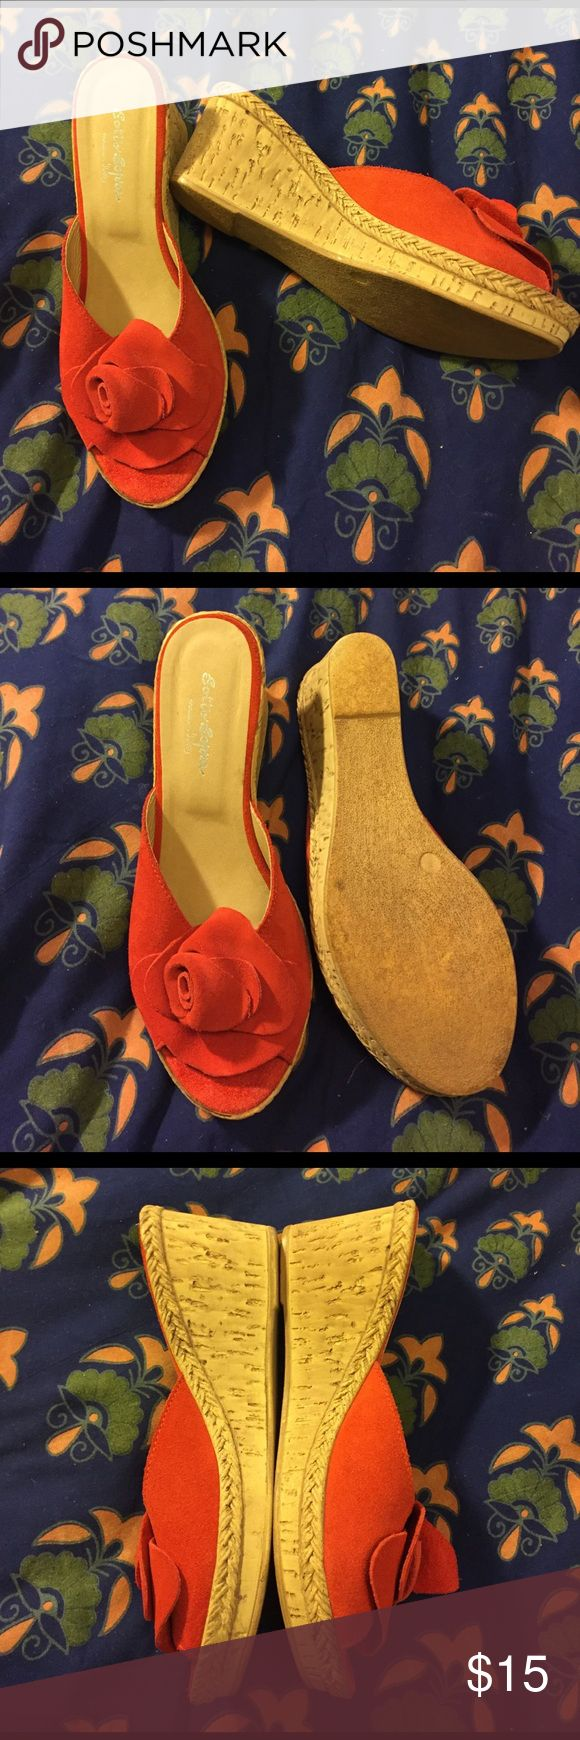 SOTTO SOPRA Italian Wedge-Size 7.5 Deep coral cork wedge mules with open toe. Retail at $55 Sotto Sopra Shoes Mules & Clogs